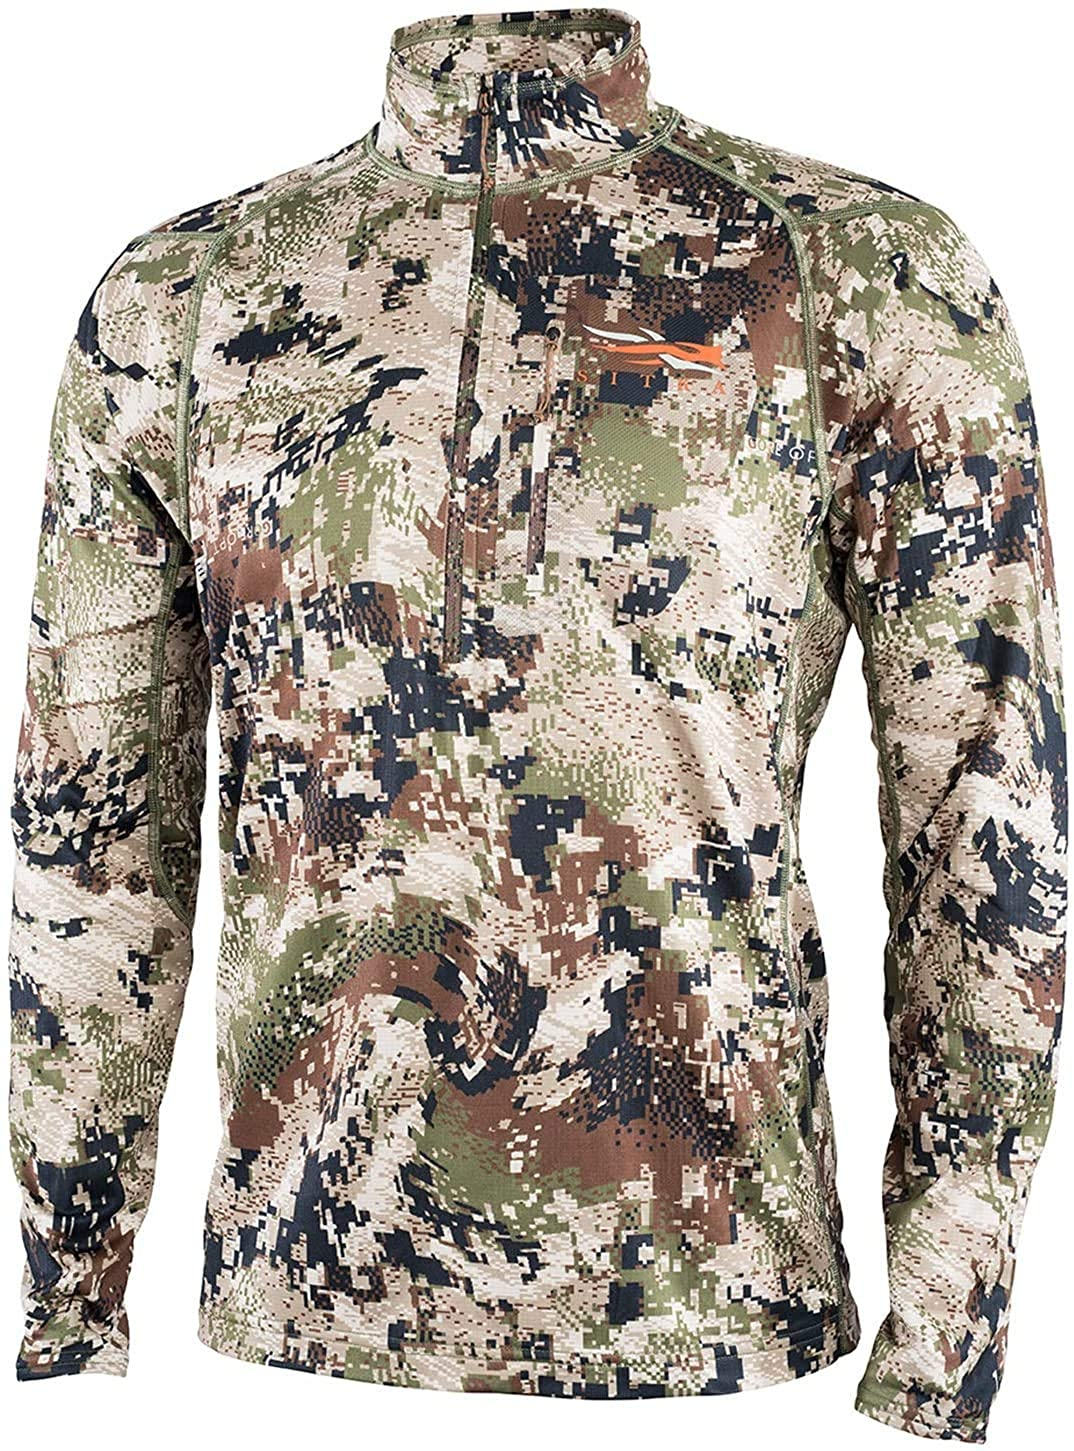 SITKA Gear Men's Core Midweight Zip-T Quick-Dry Odor-Free Long Sleeve Hunting Shirt, Optifade Subalpine, XX-Large Tall